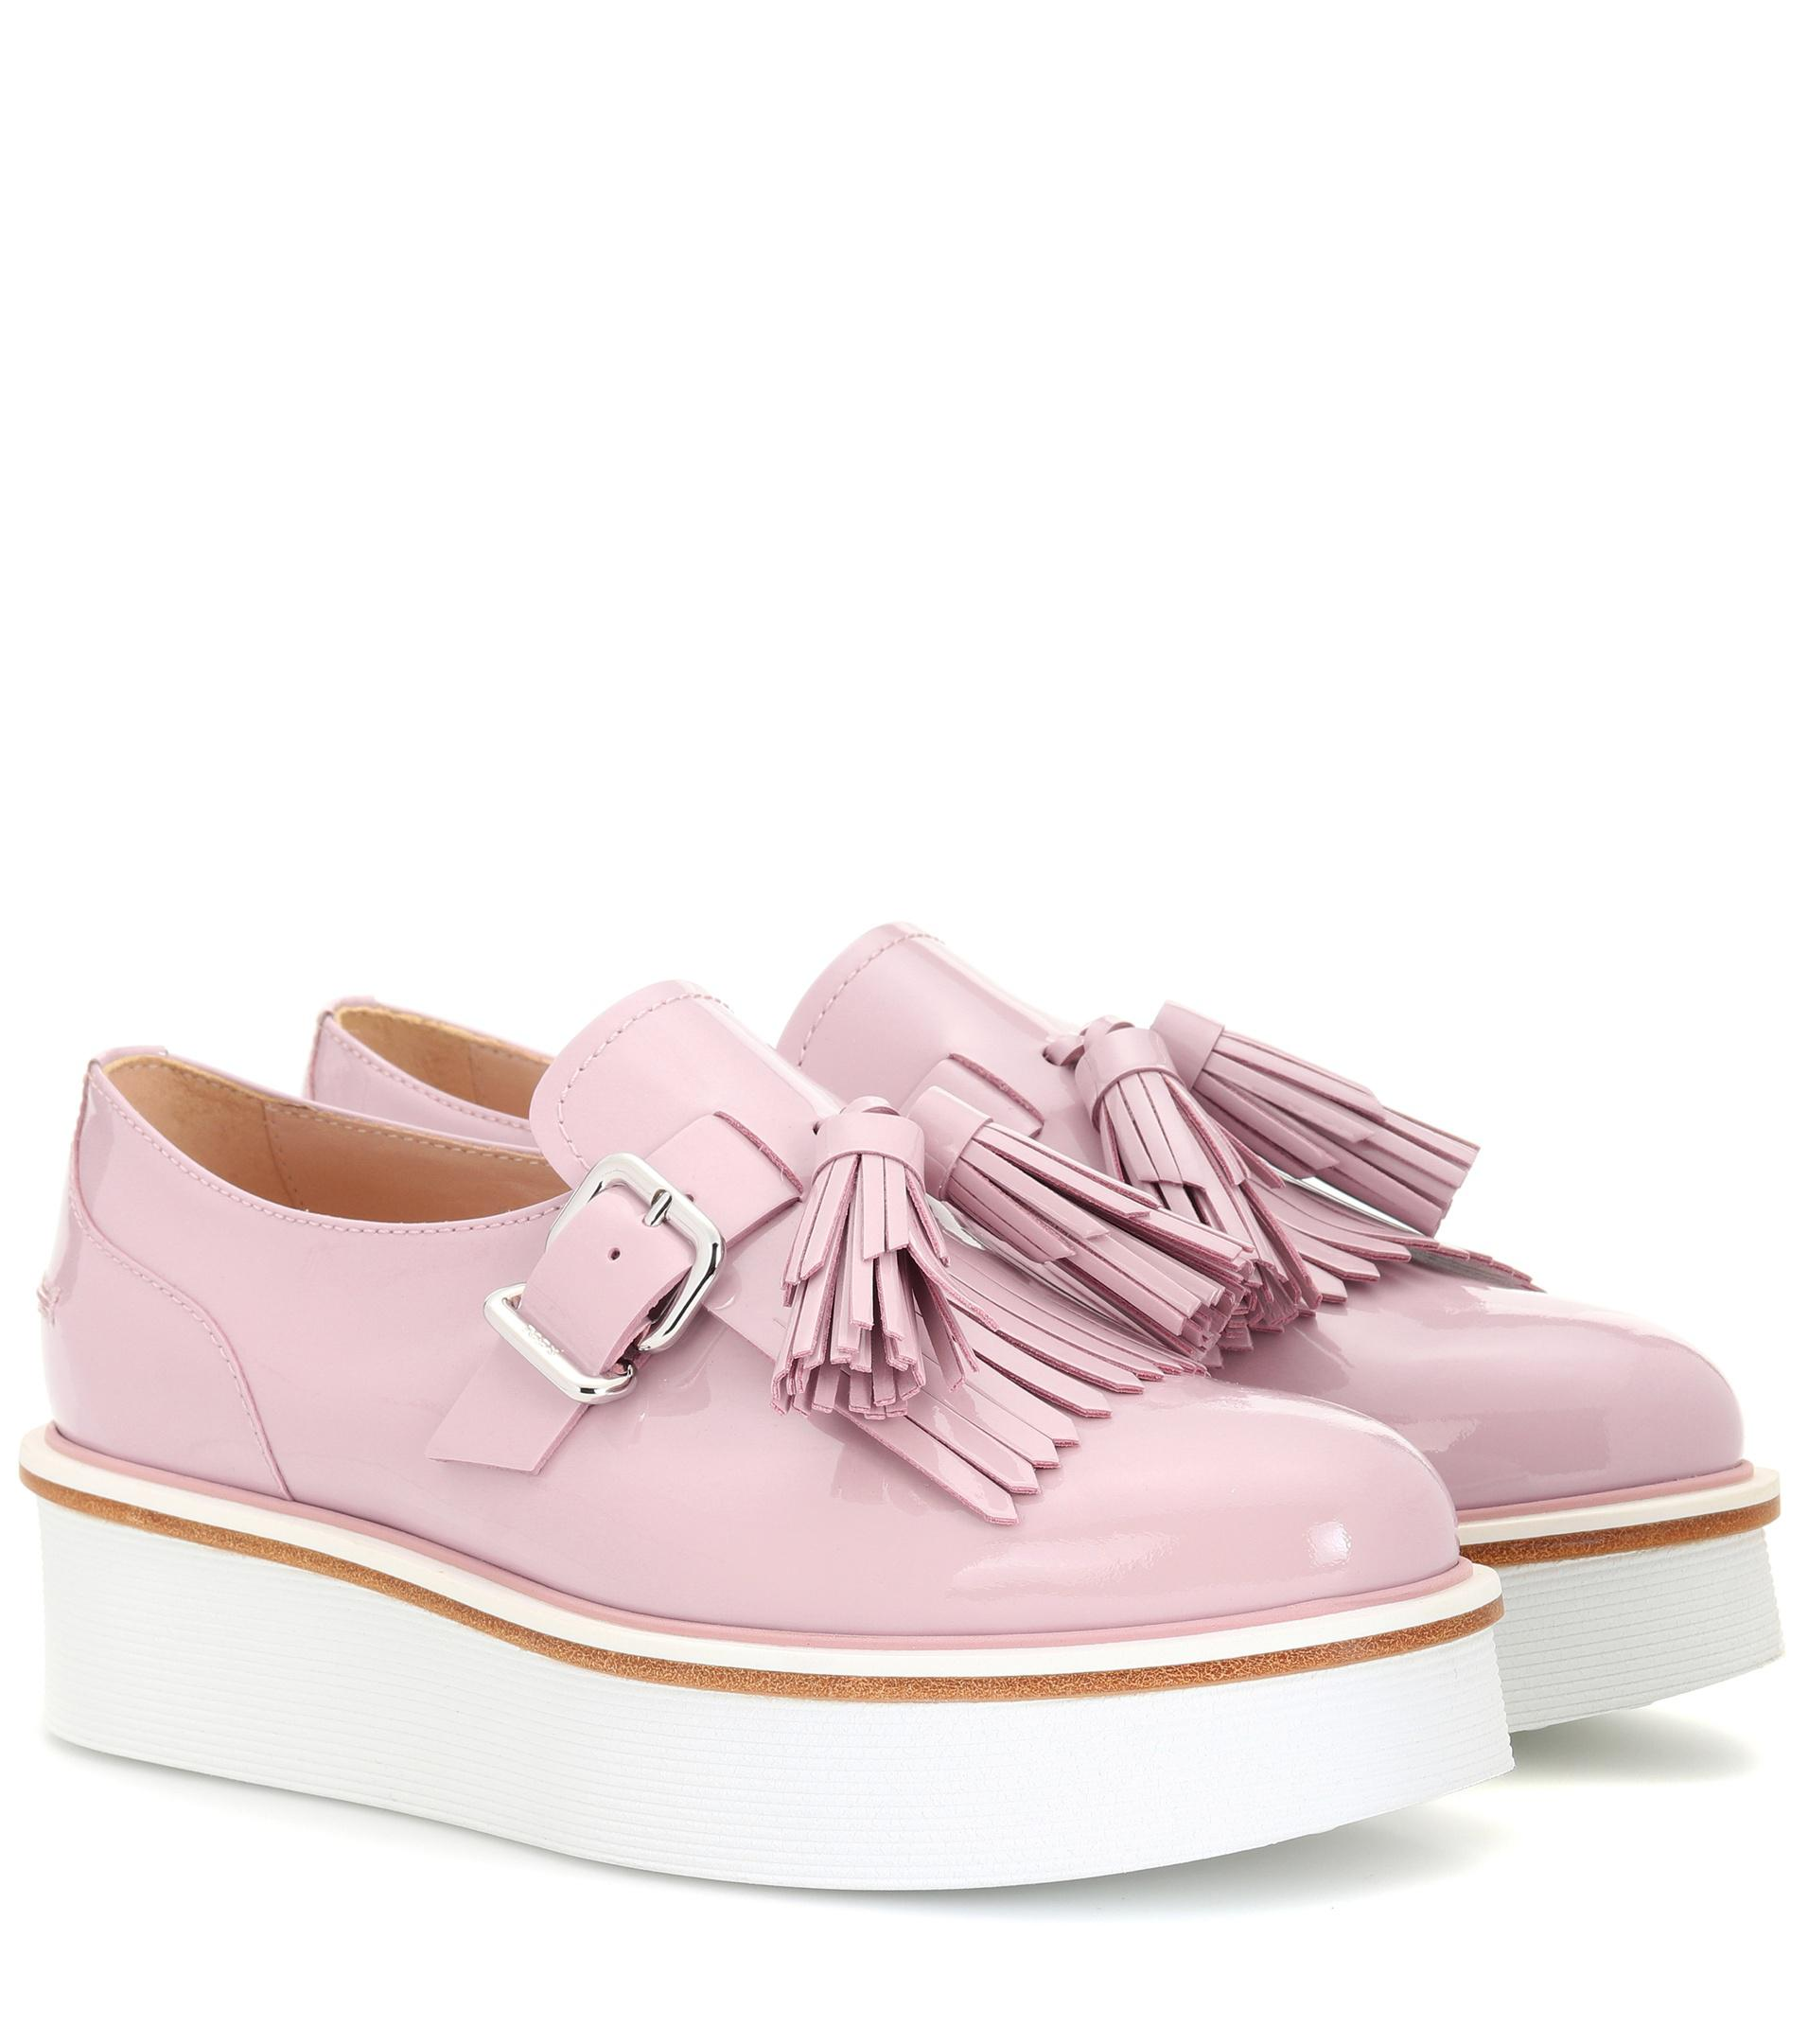 f0a73ed6605 Tod s Leather Platform Loafers in Pink - Lyst